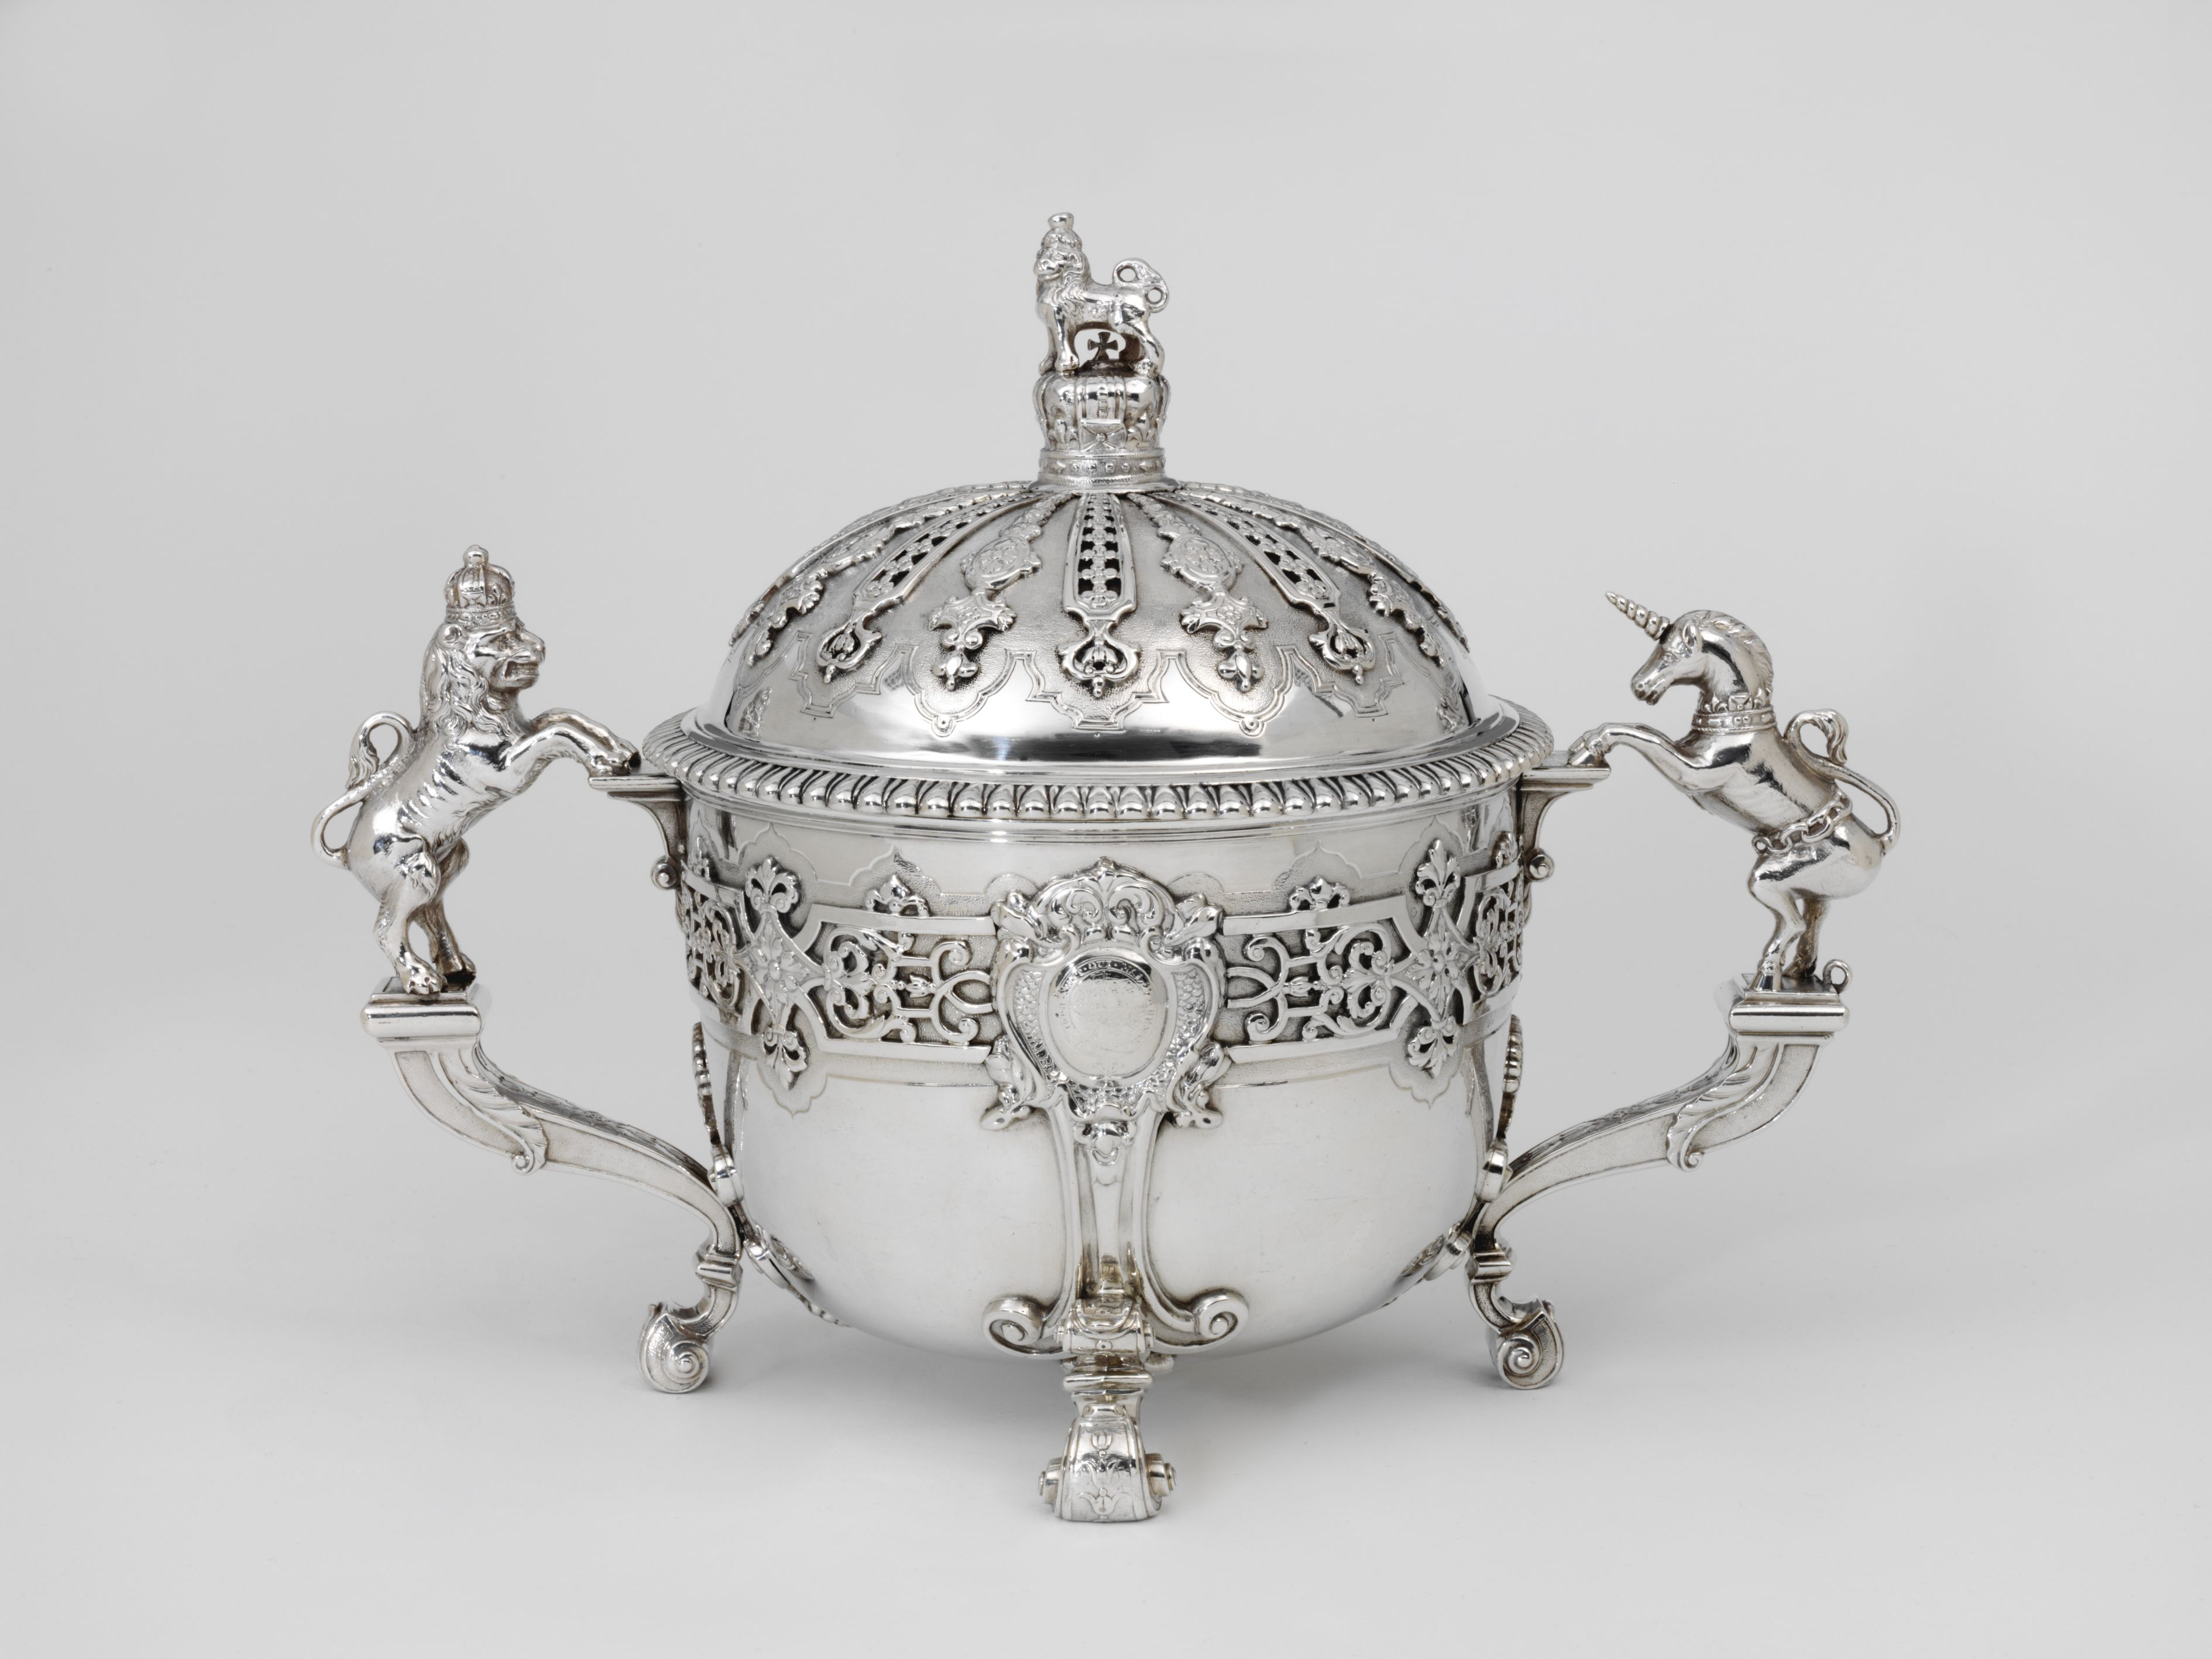 © The Rosalinde and Arthur Gilbert Collection on loan to the V&A, London